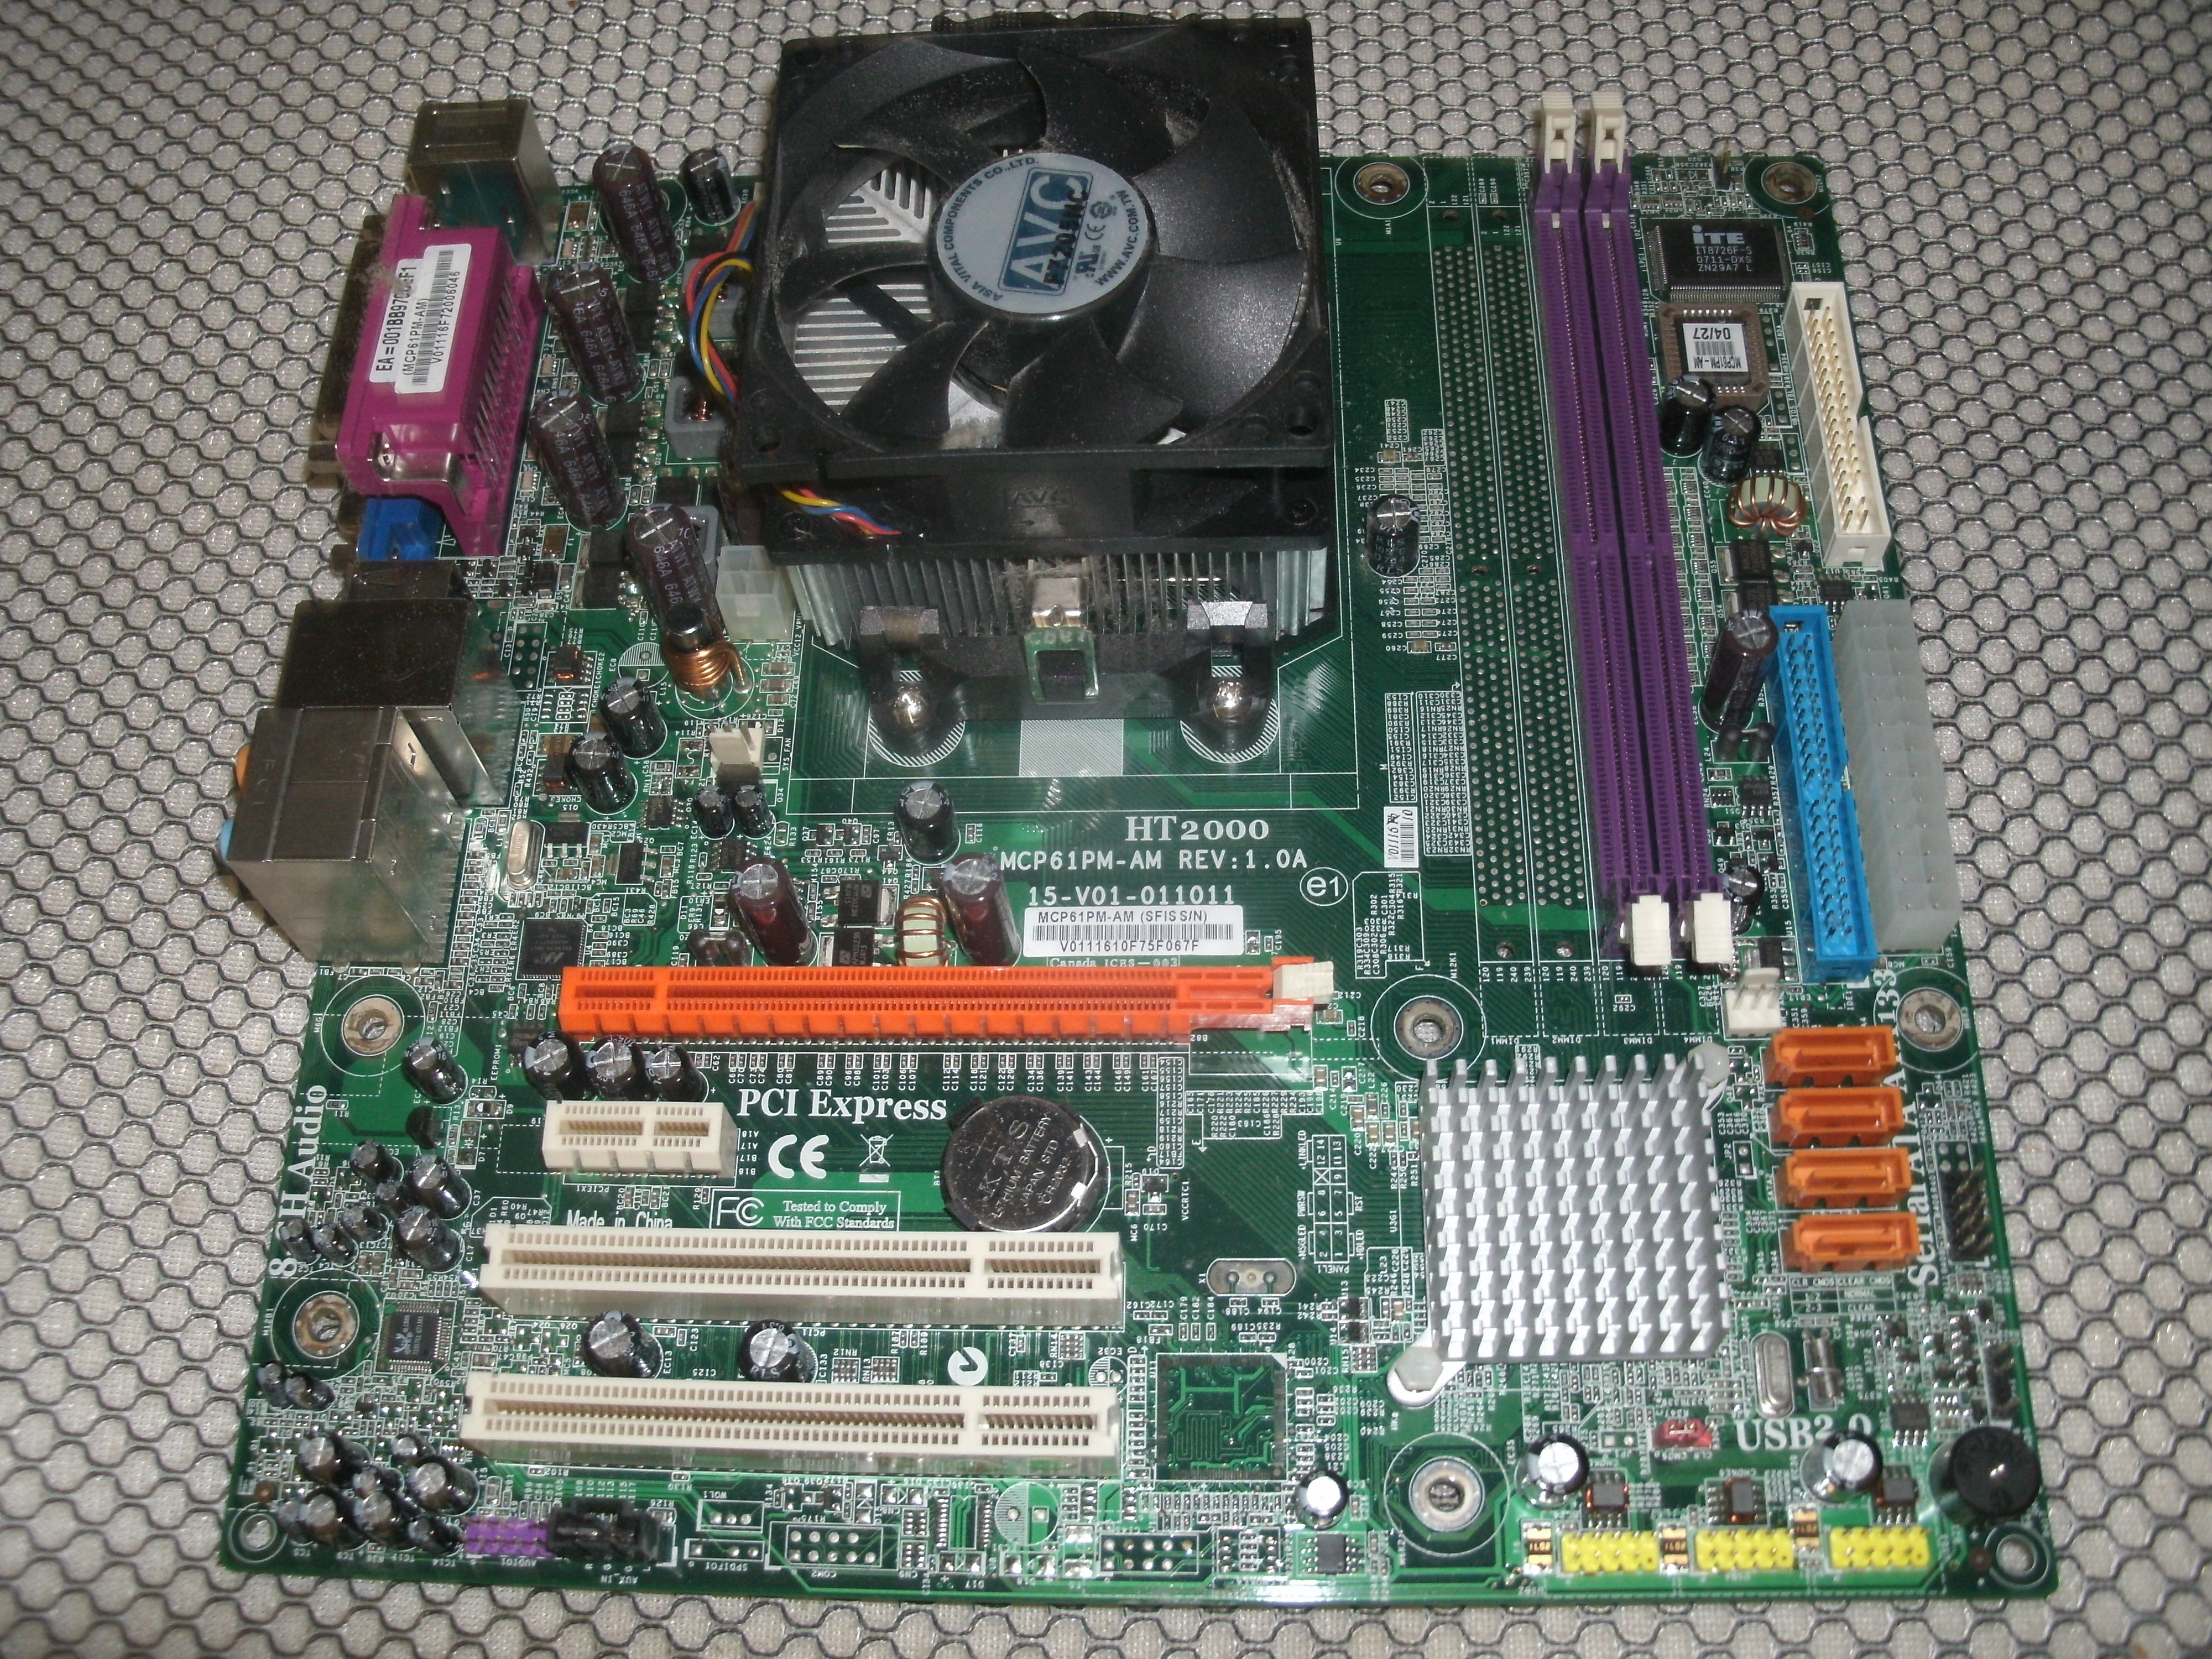 Pci Express Ht2000 Motherboard Drivers For Windows 7 Wiring Diagram After